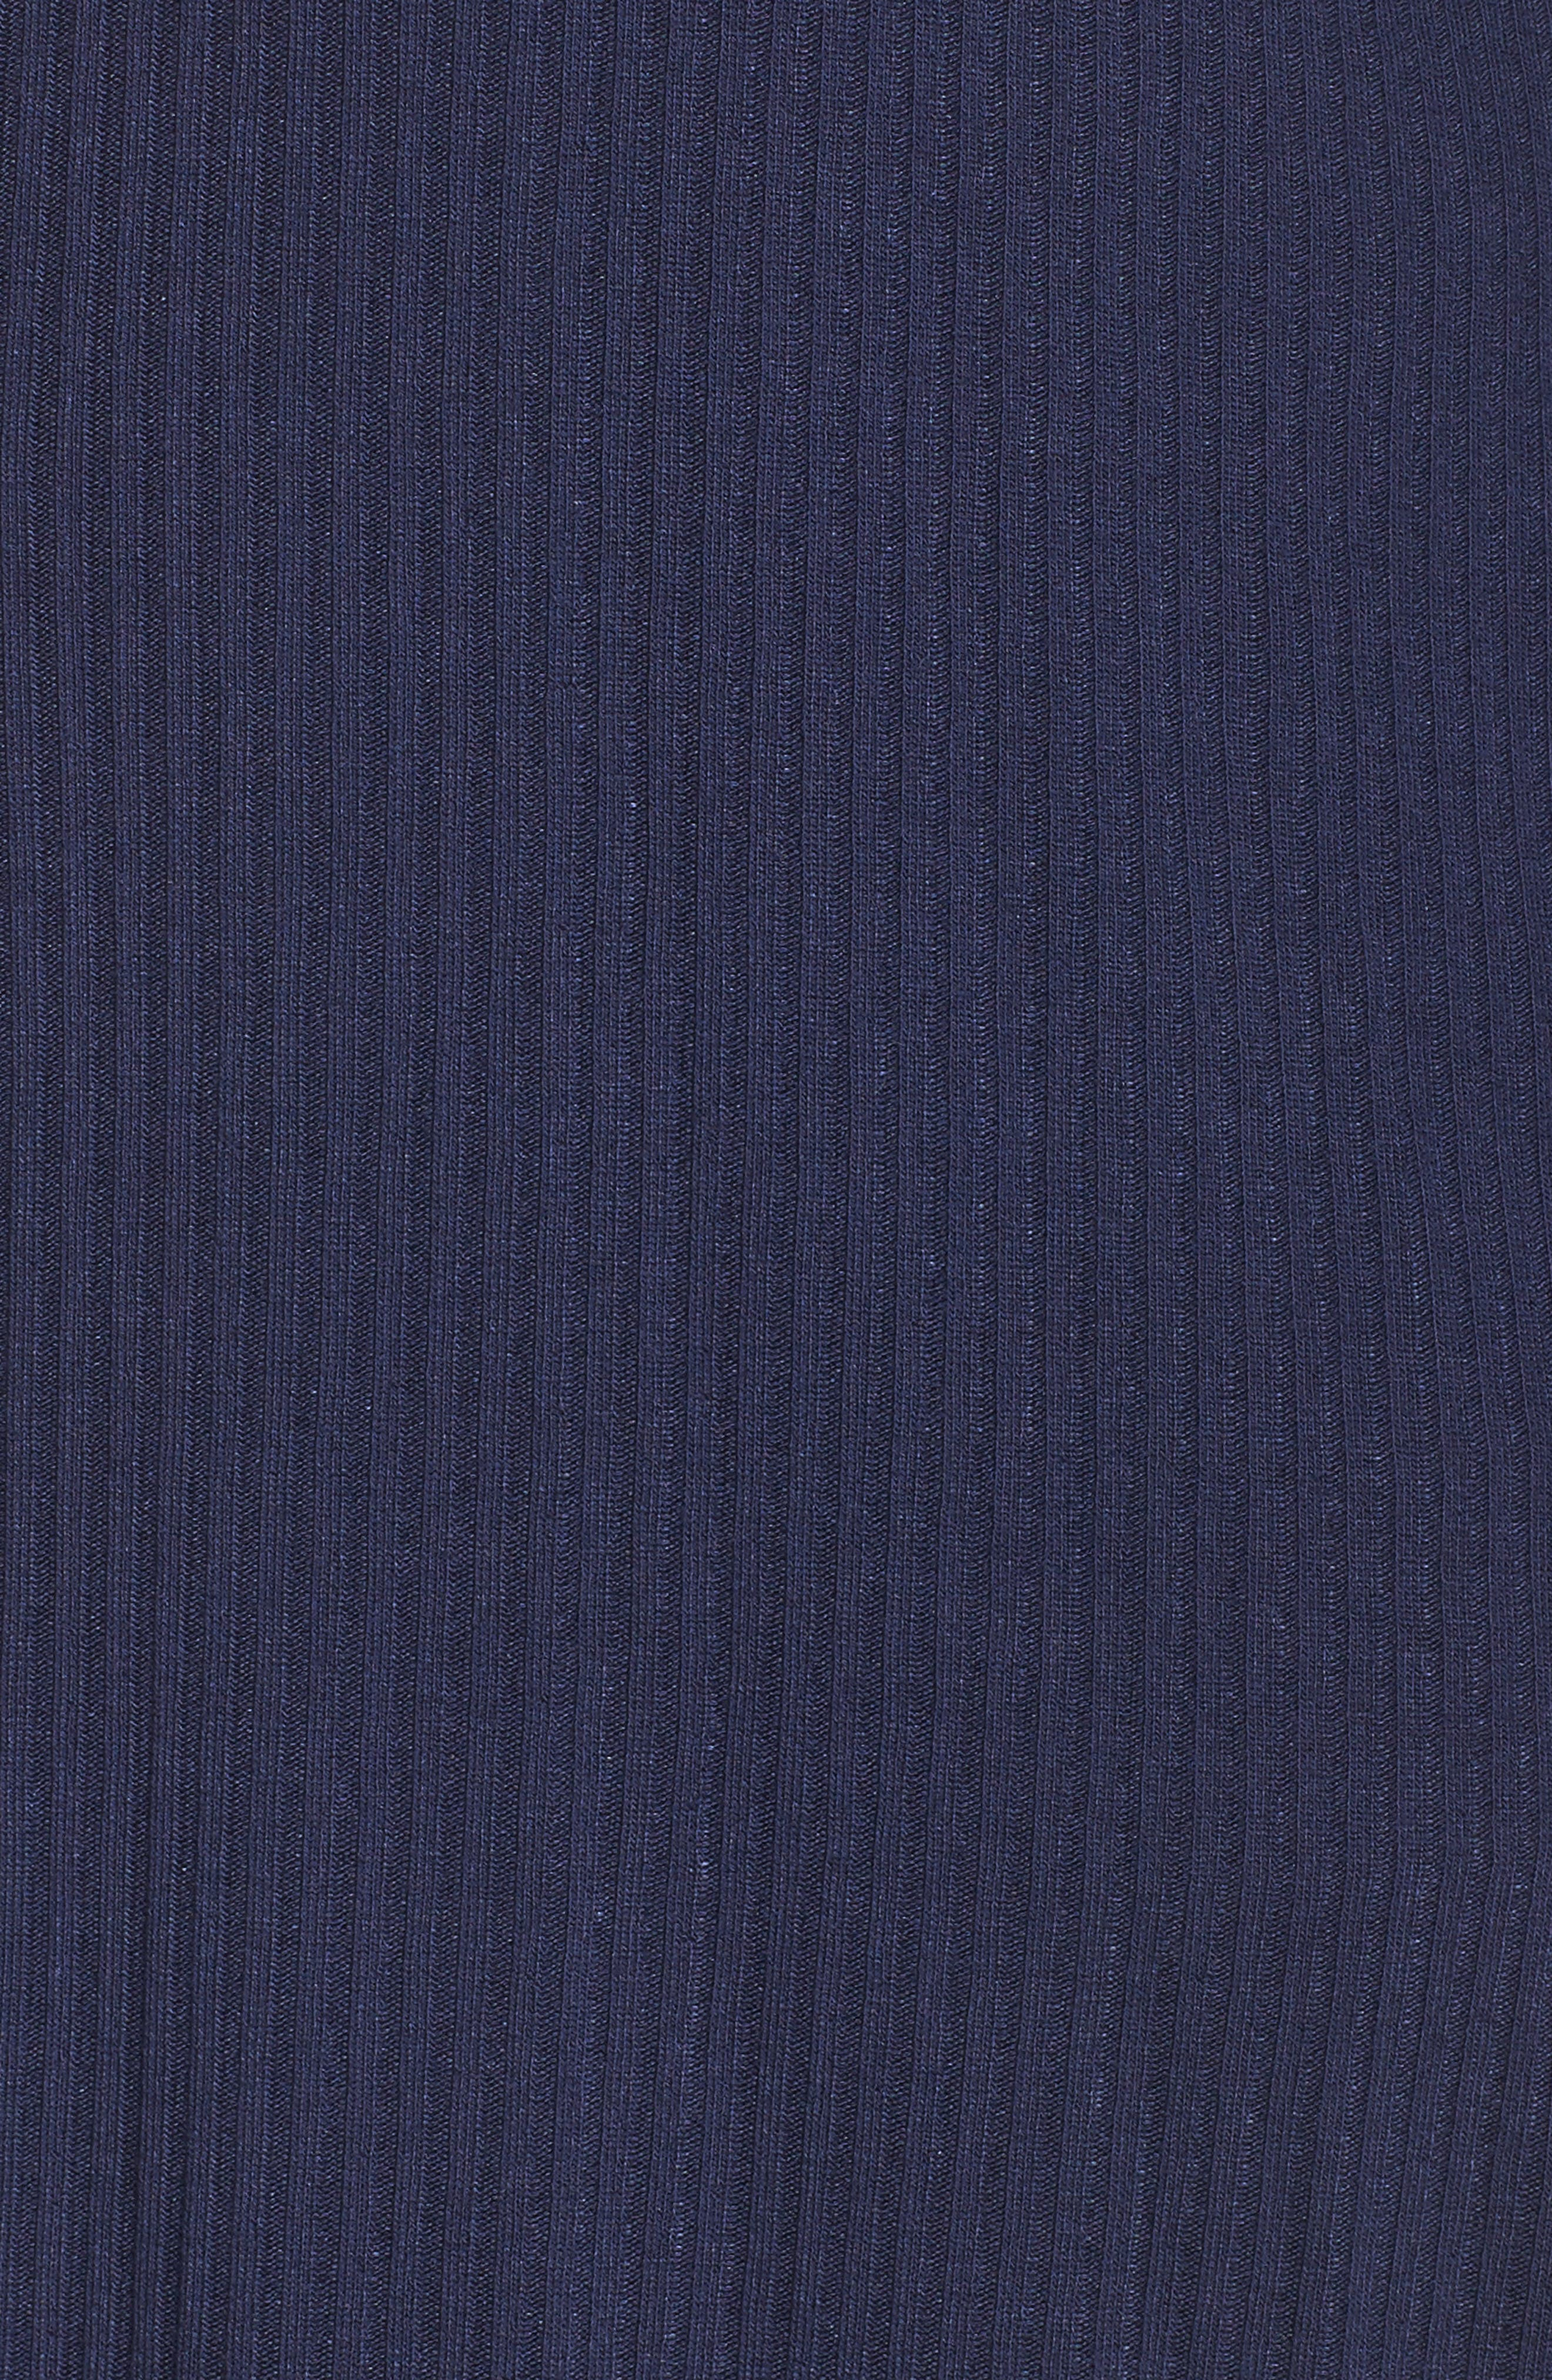 Ribbed Open-Front Cardigan,                             Alternate thumbnail 5, color,                             Navy Peacoat